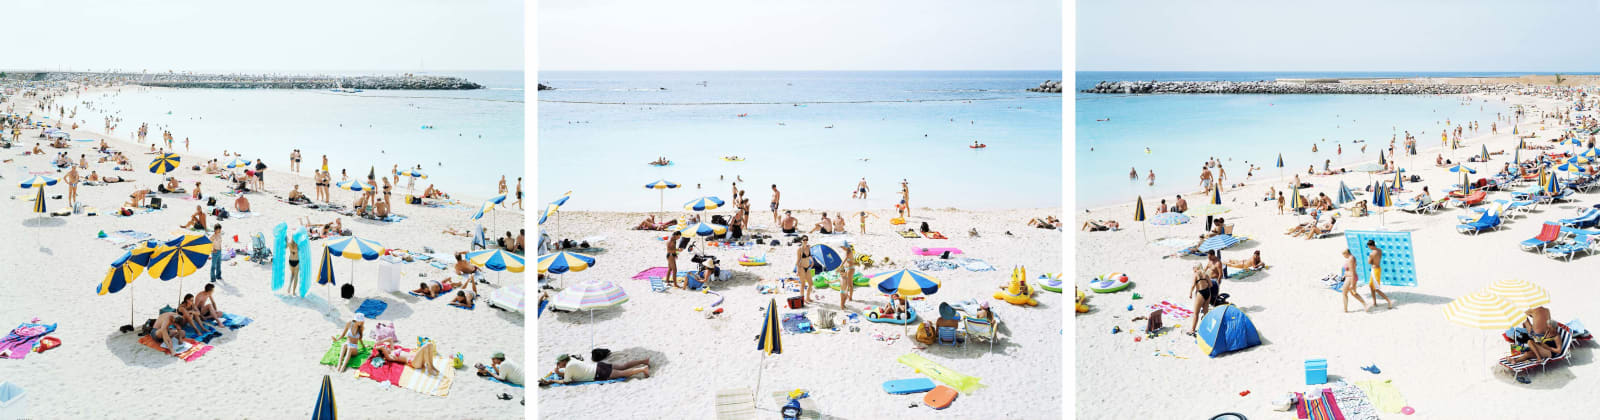 Triptych of beachgoers under bright umbrellas with towels, by Massimo VItali